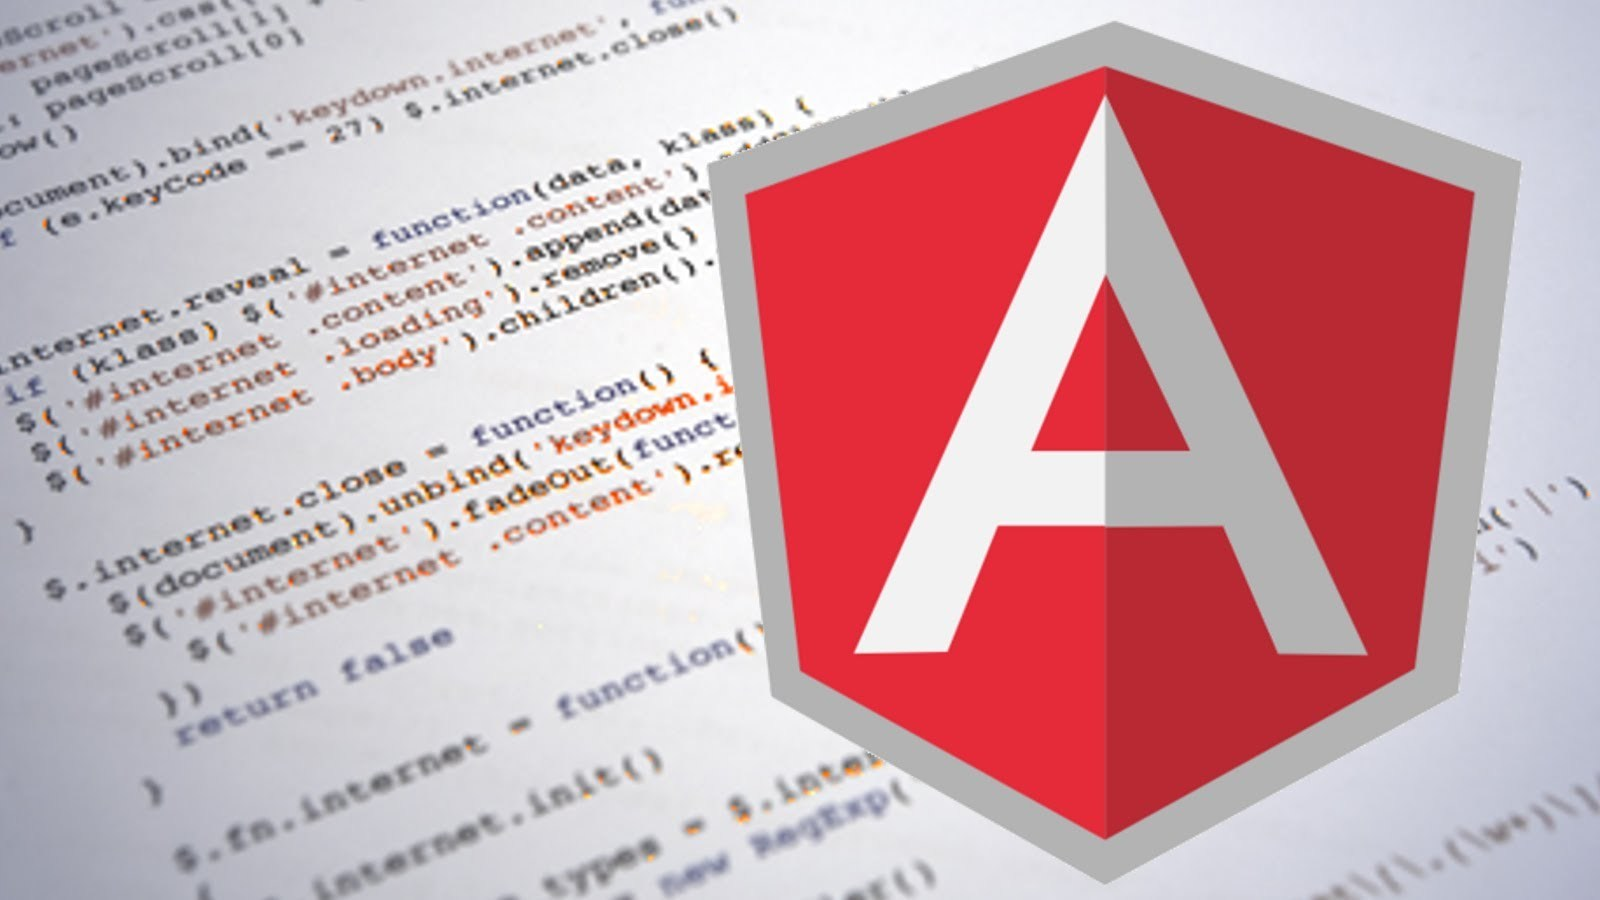 Интеграция refresh token в angularjs приложение